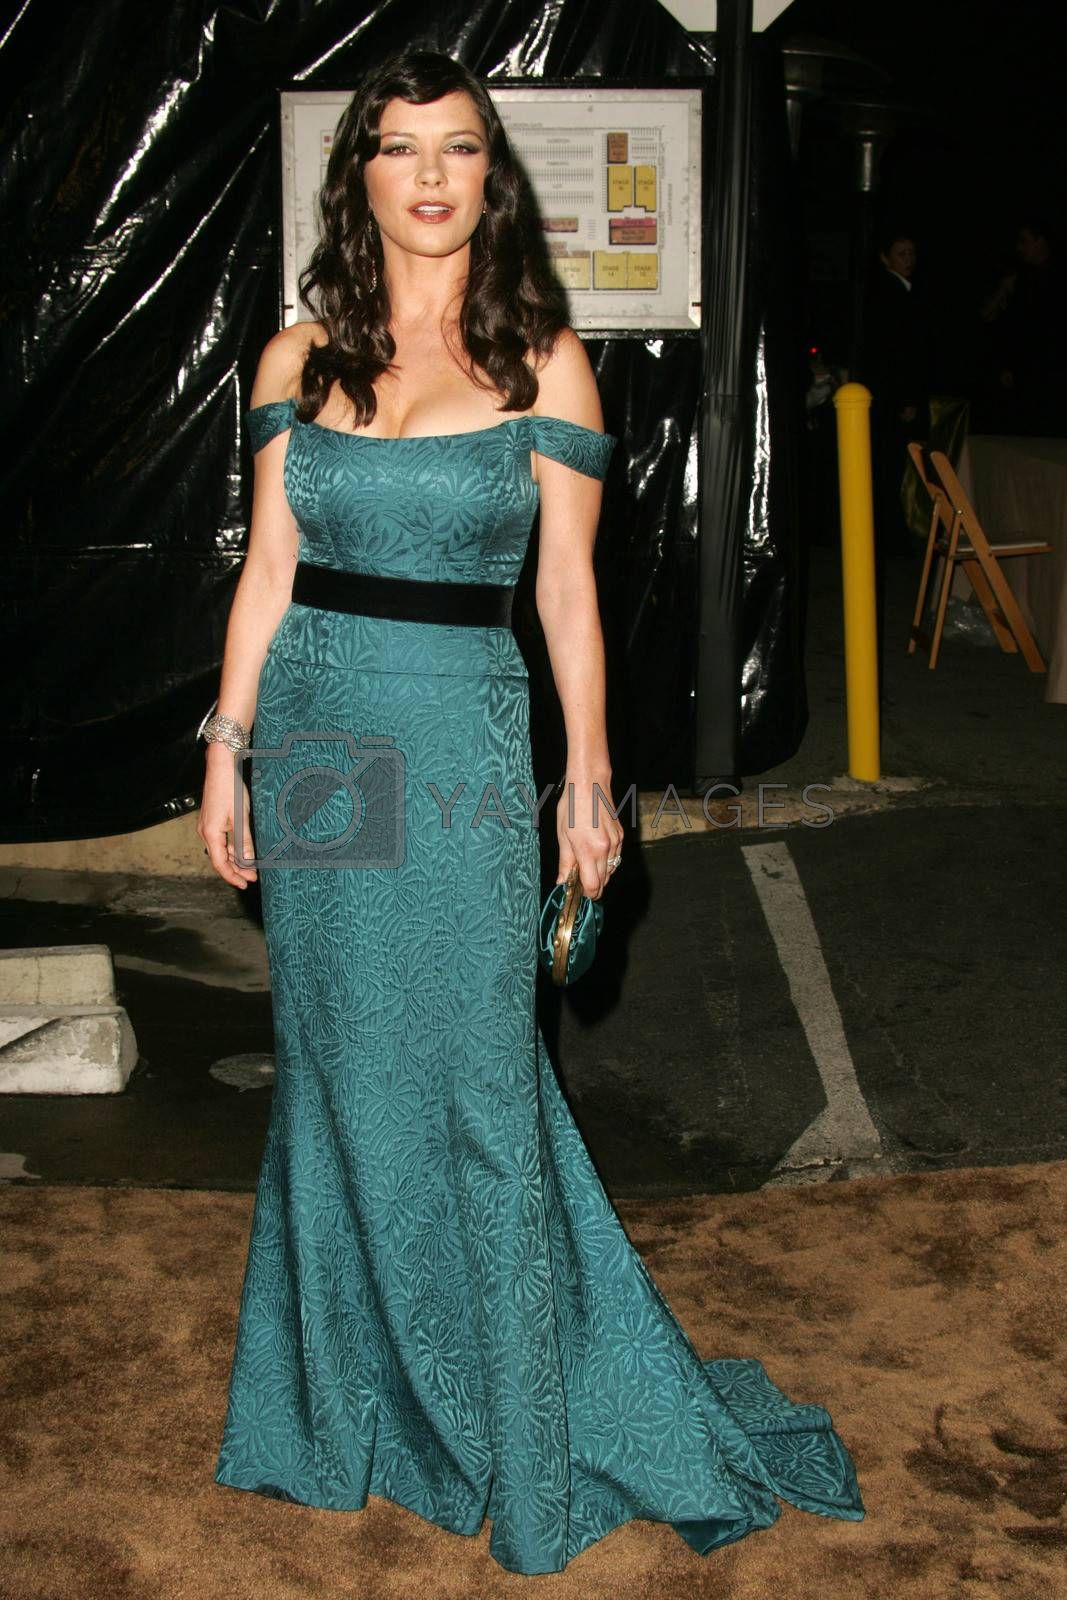 Catherine Zeta Jones at the 2nd Annual A Fine Romance, Hollywood and Broadway Musical Fundraiser. Sunset Gower Studios, Hollywood, CA. 11-18-06